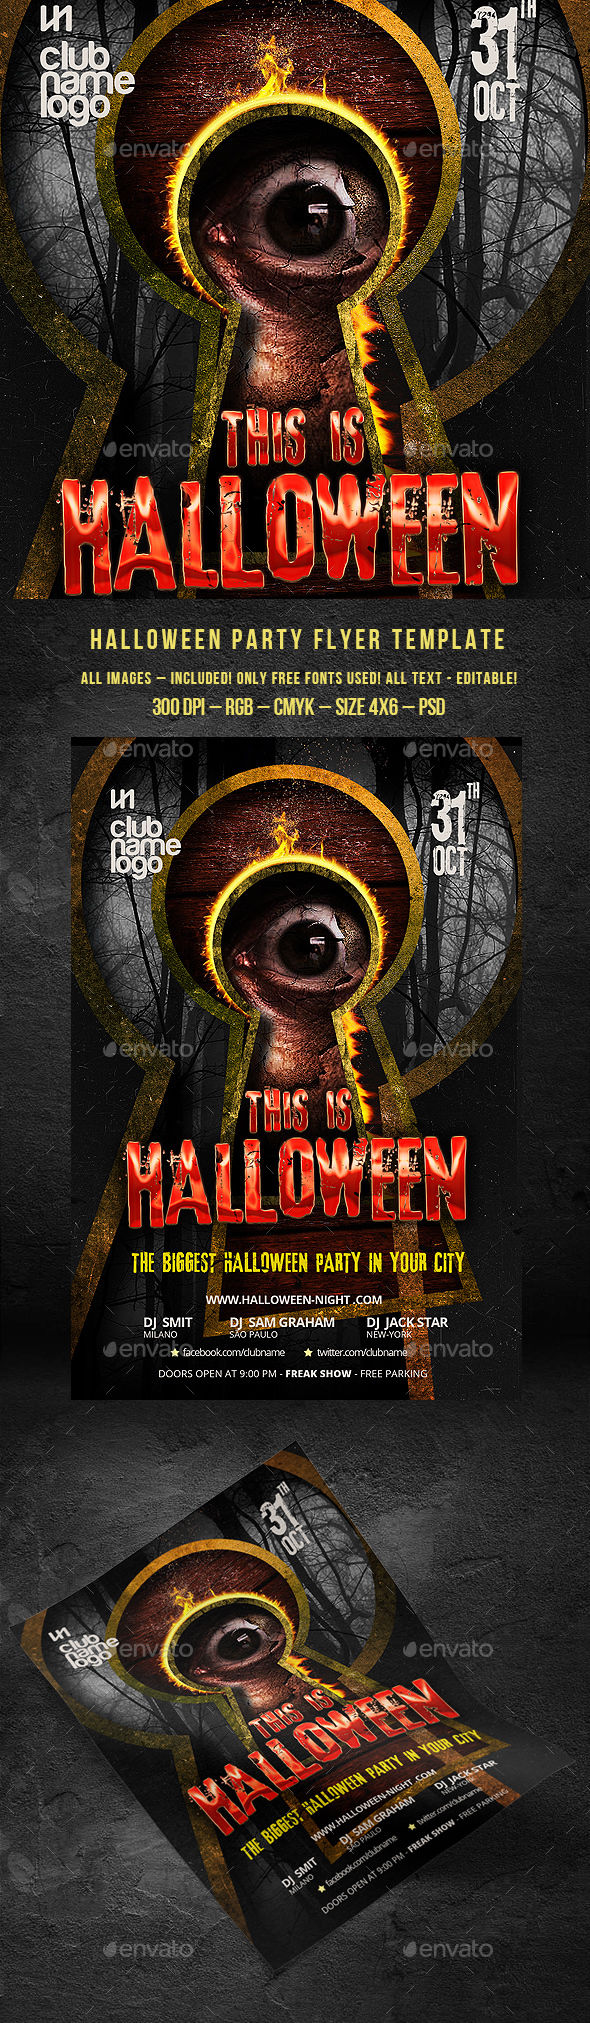 Halloween by BigWeek (Halloween party flyer)